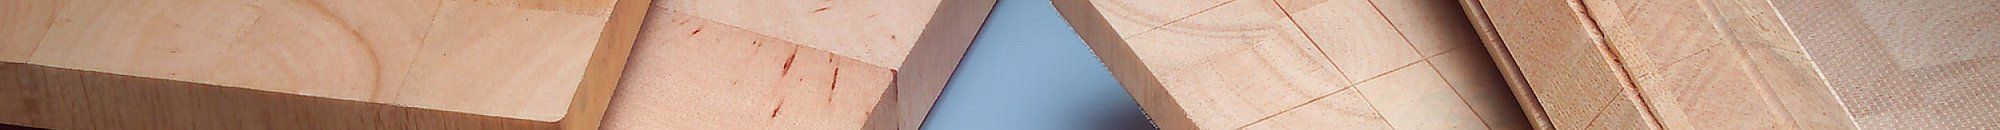 BROADEST ASSORTMENT OF HIGH-QUALITY CORE MATERIALS WORLDWIDE